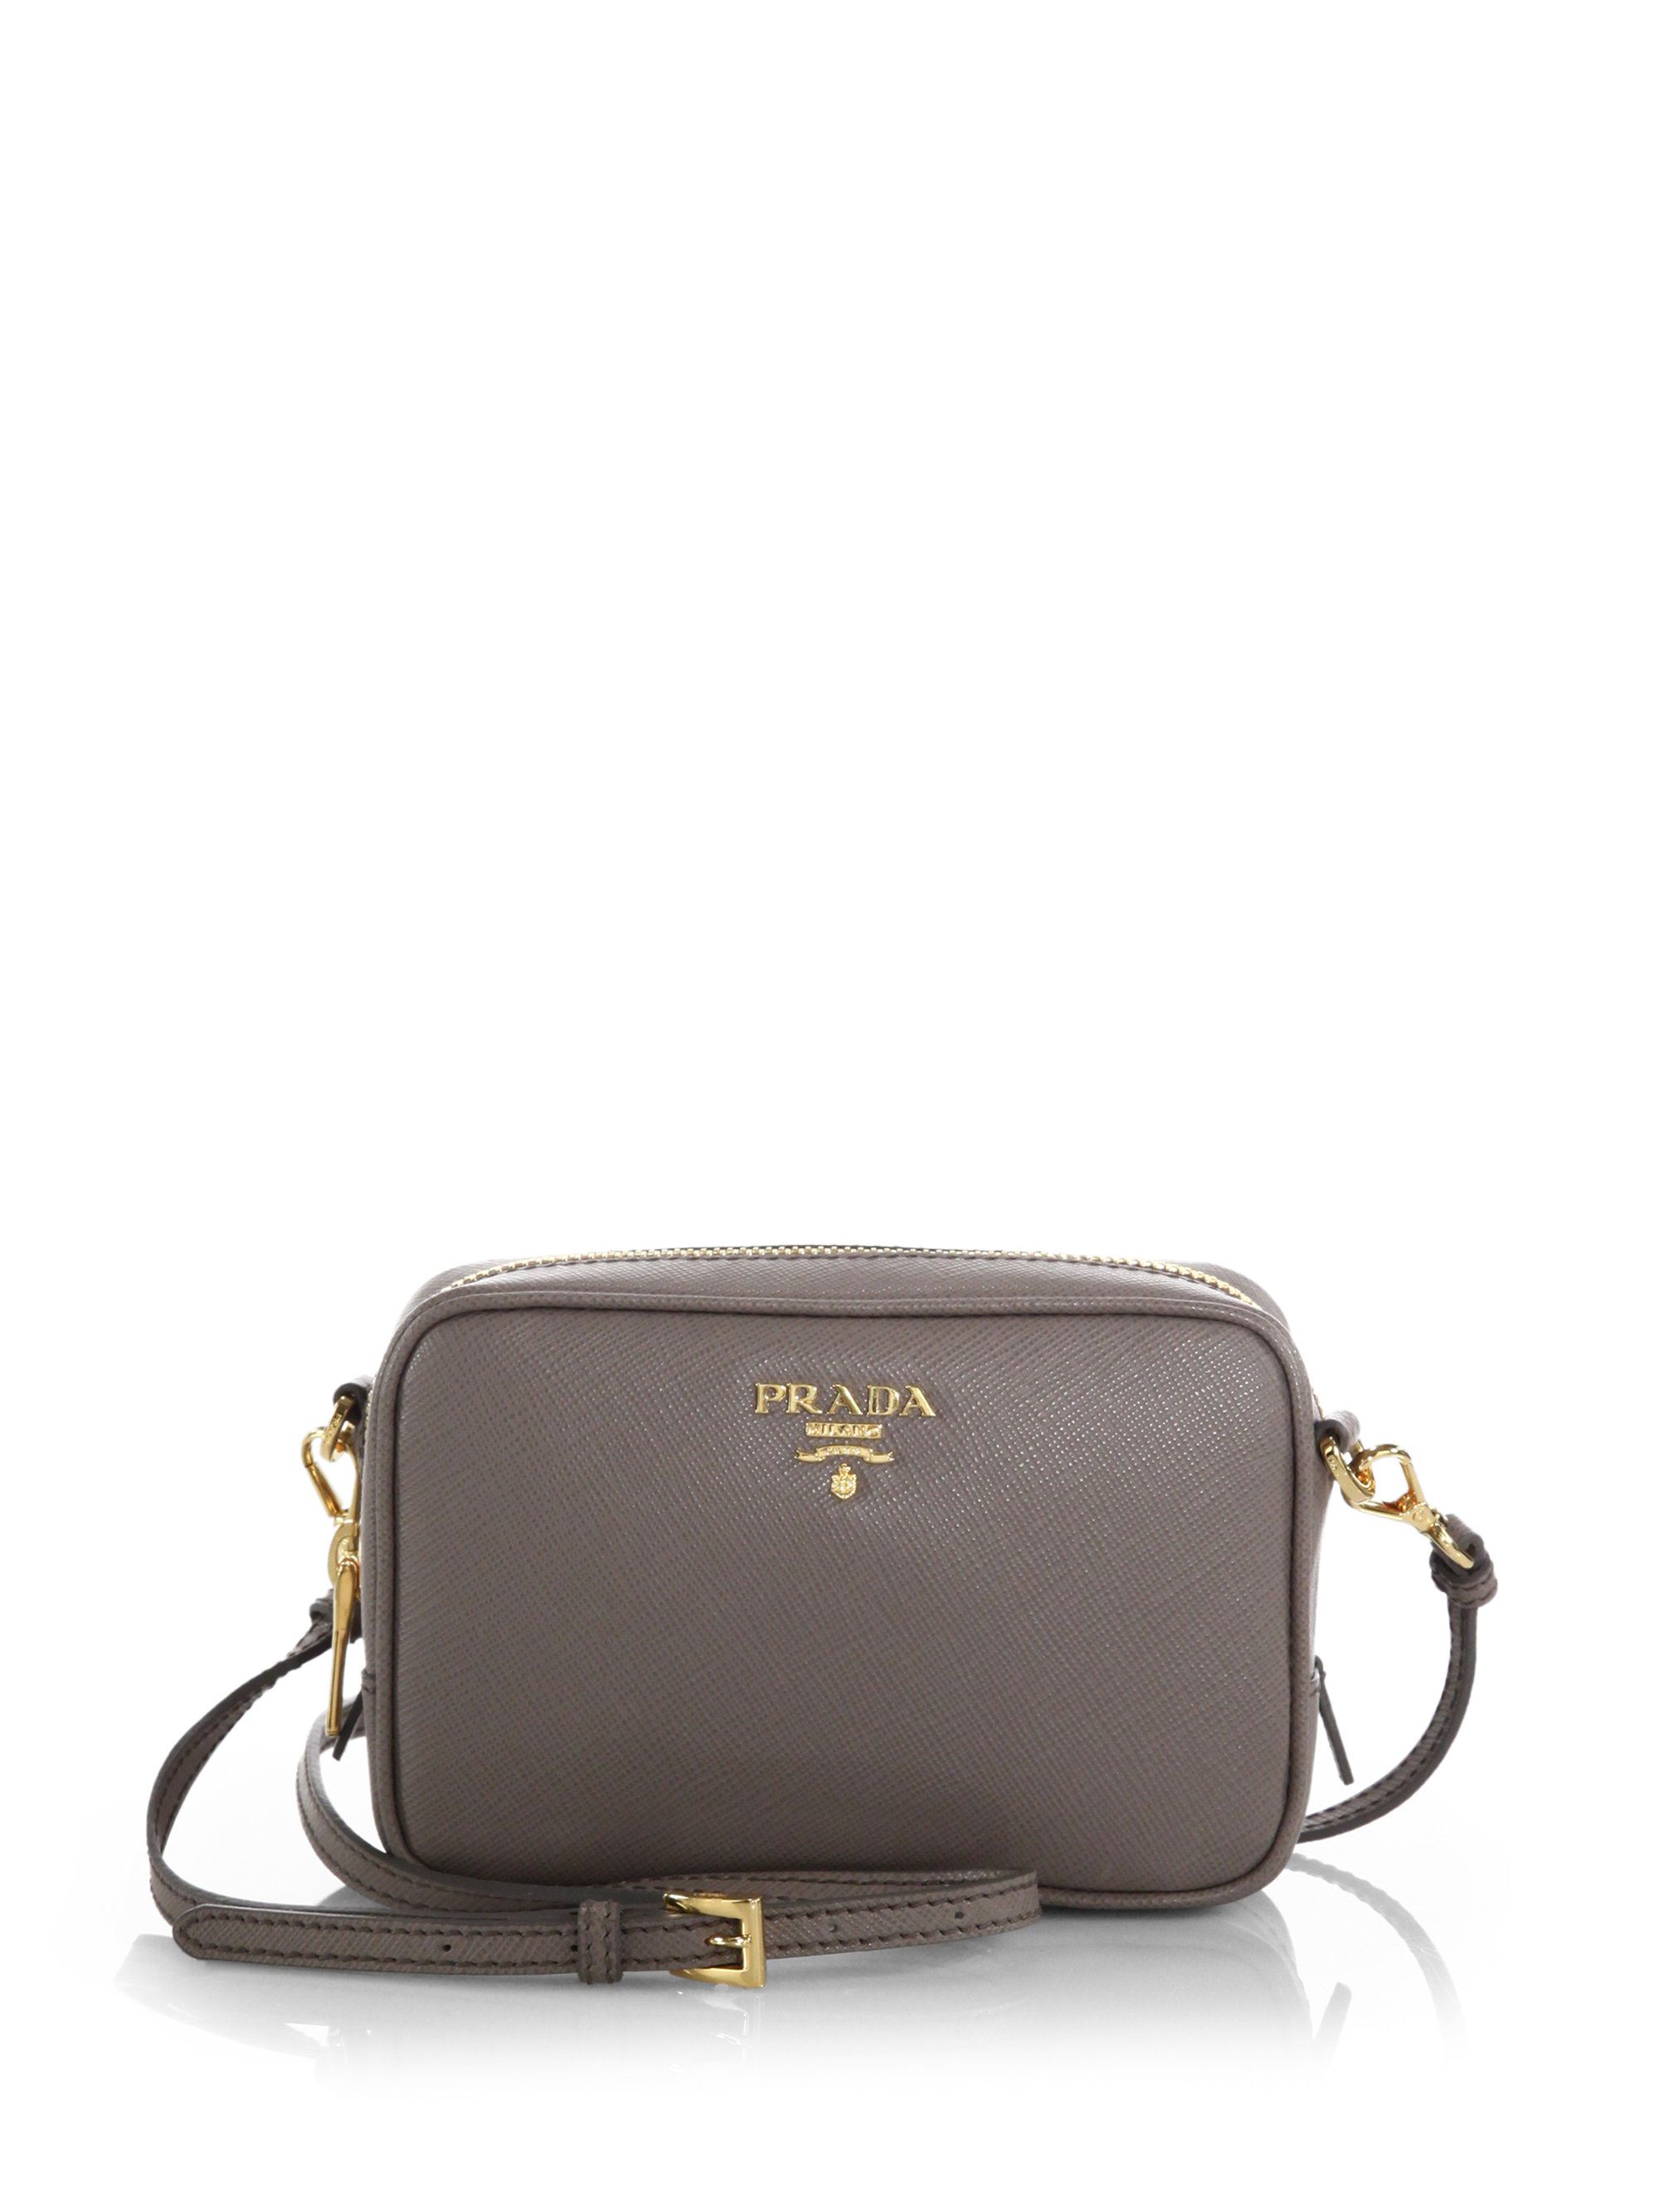 prada nylon handbags sale - prada mini